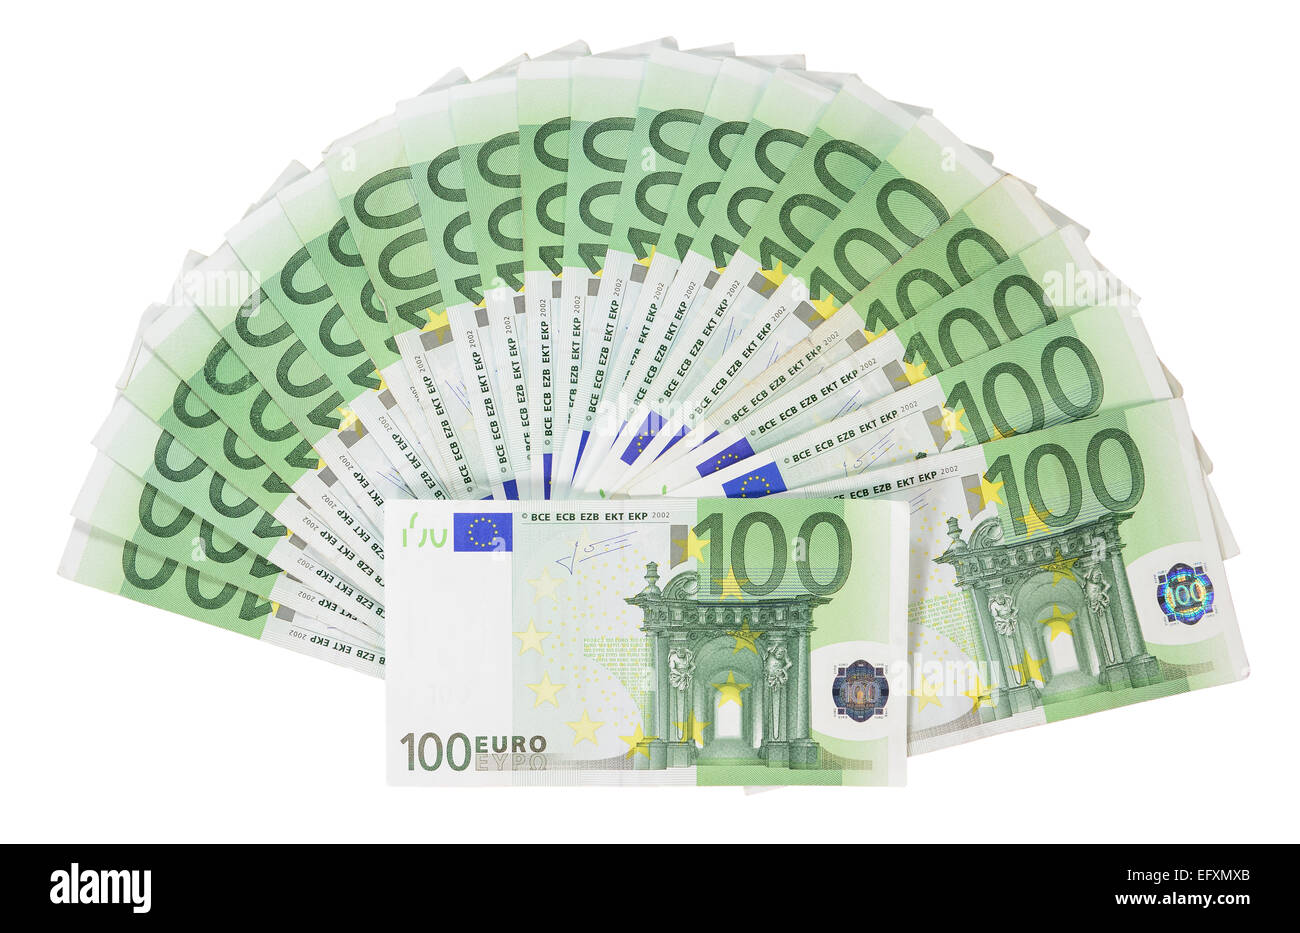 Several hundred-Euro banknotes isolated on white. - Stock Image